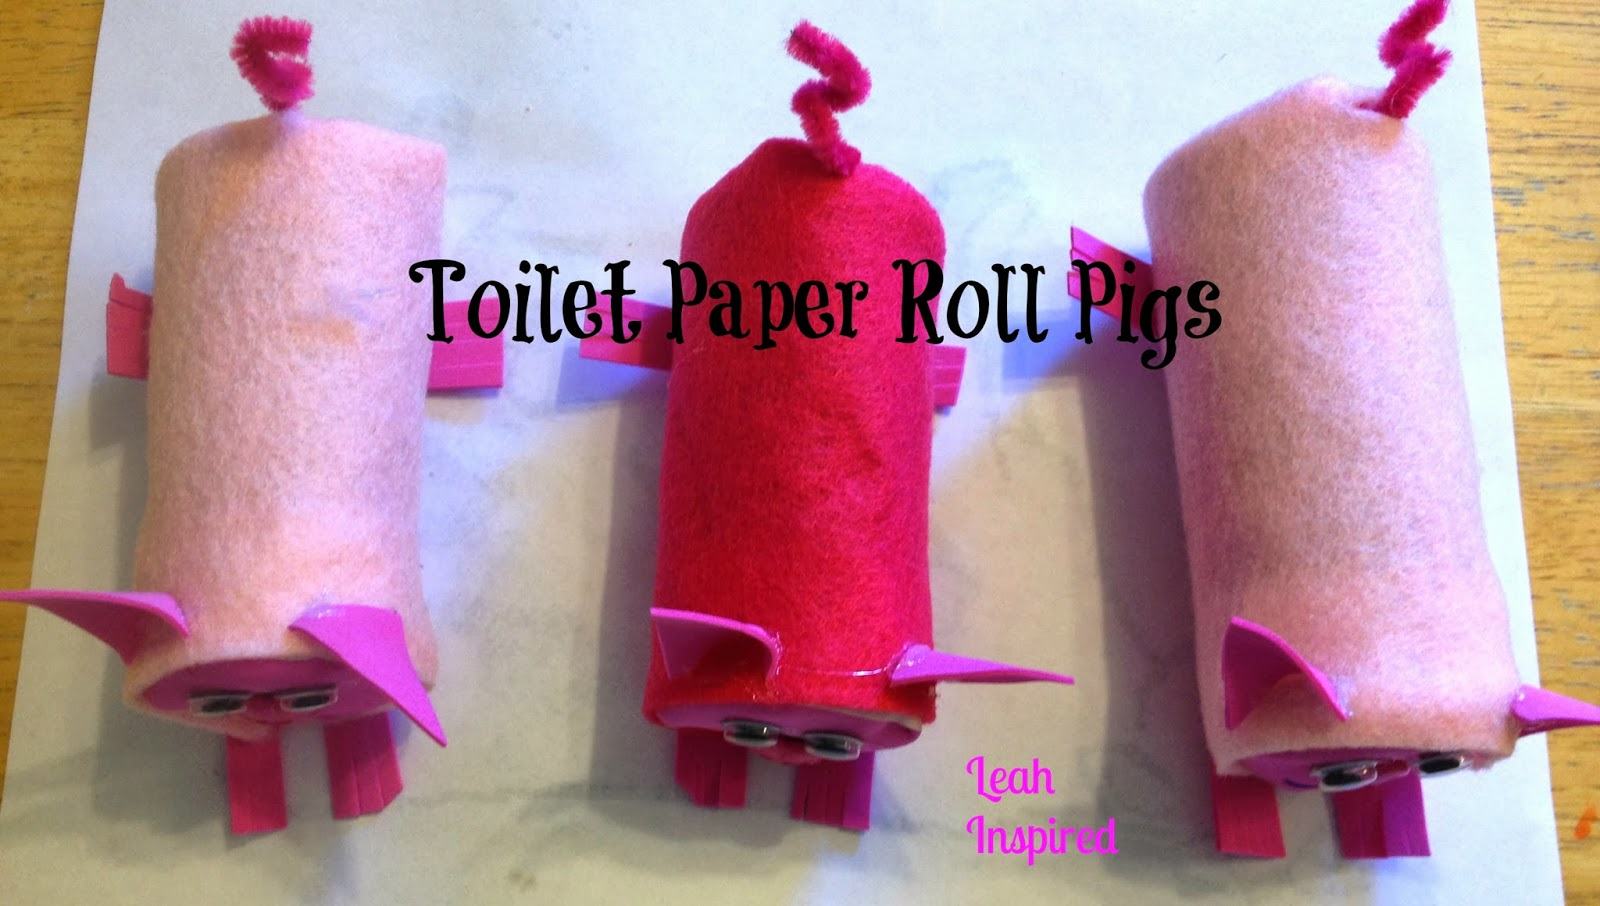 Creations by leah inspired toilet paper roll pig toilet paper roll pig jeuxipadfo Image collections